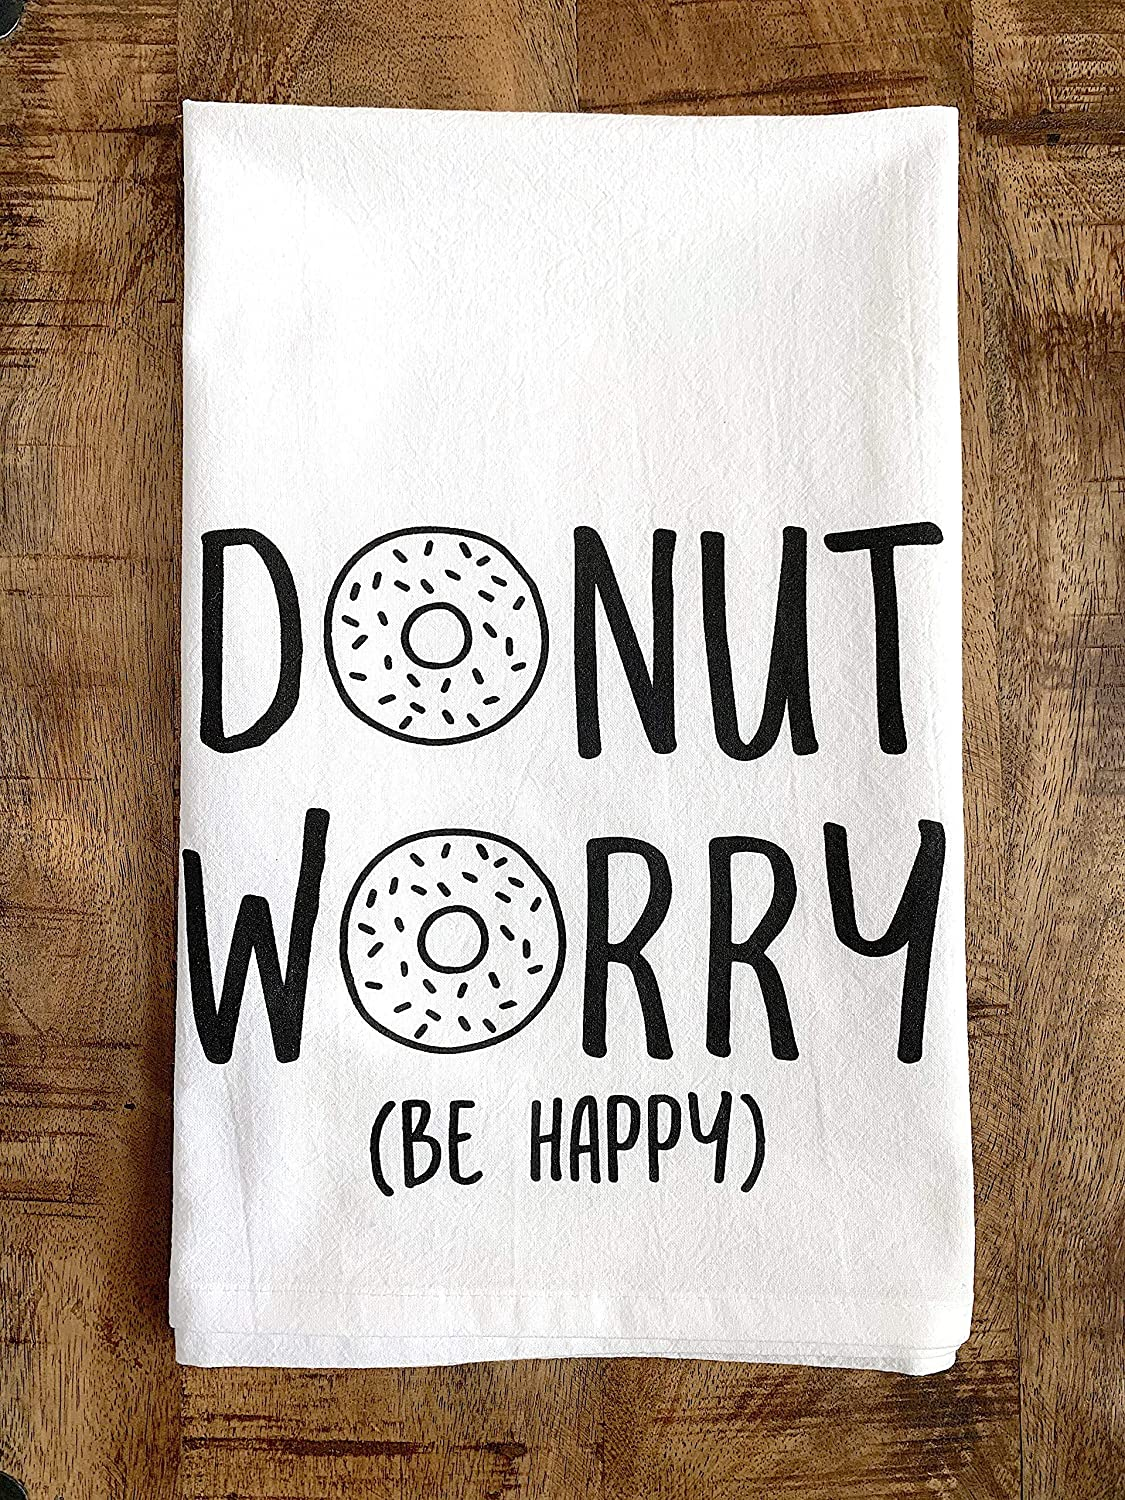 Funny Kitchen Towel Donut Worry Be Happy Dish Cloth Hand Towel Gift for Hostess Housewarming